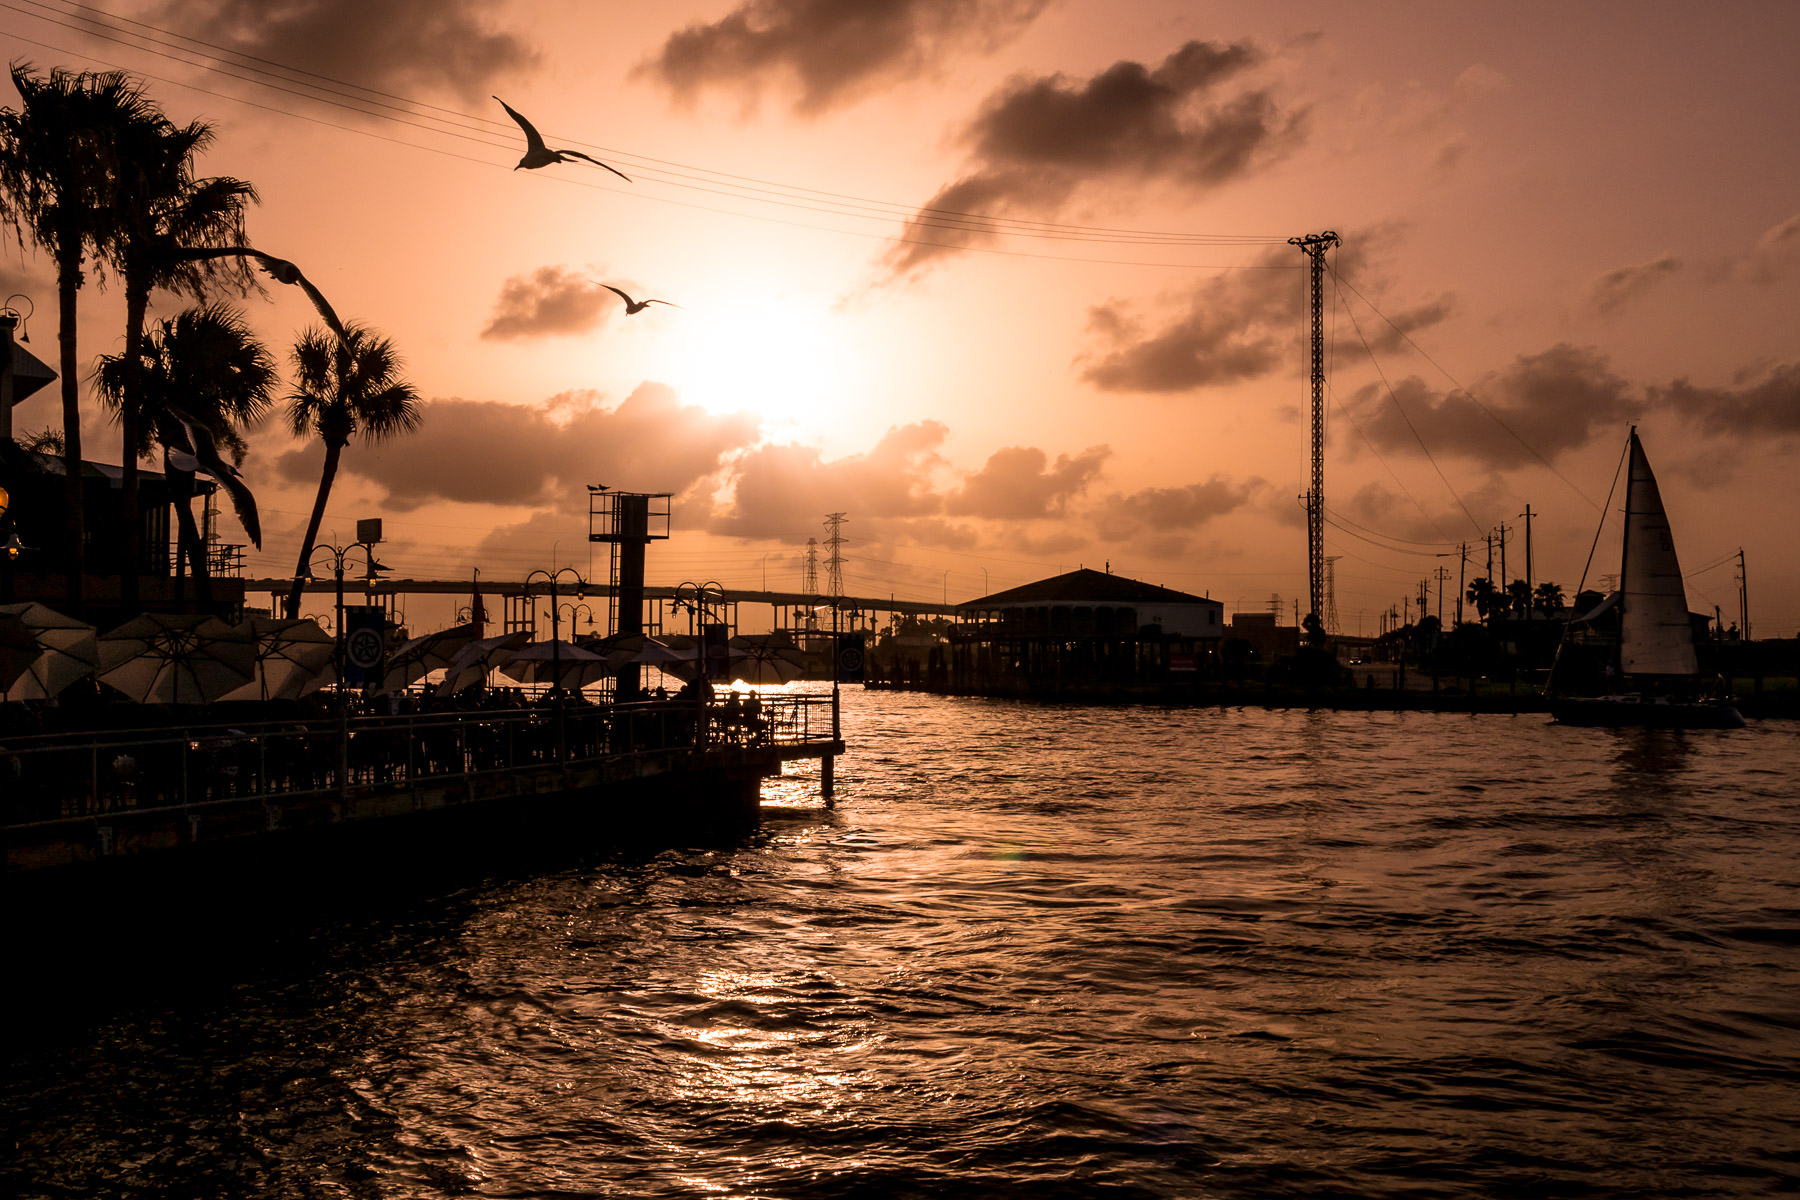 Birds fly by as the sun sets on the Kemah Boardwalk in Kemah, Texas.